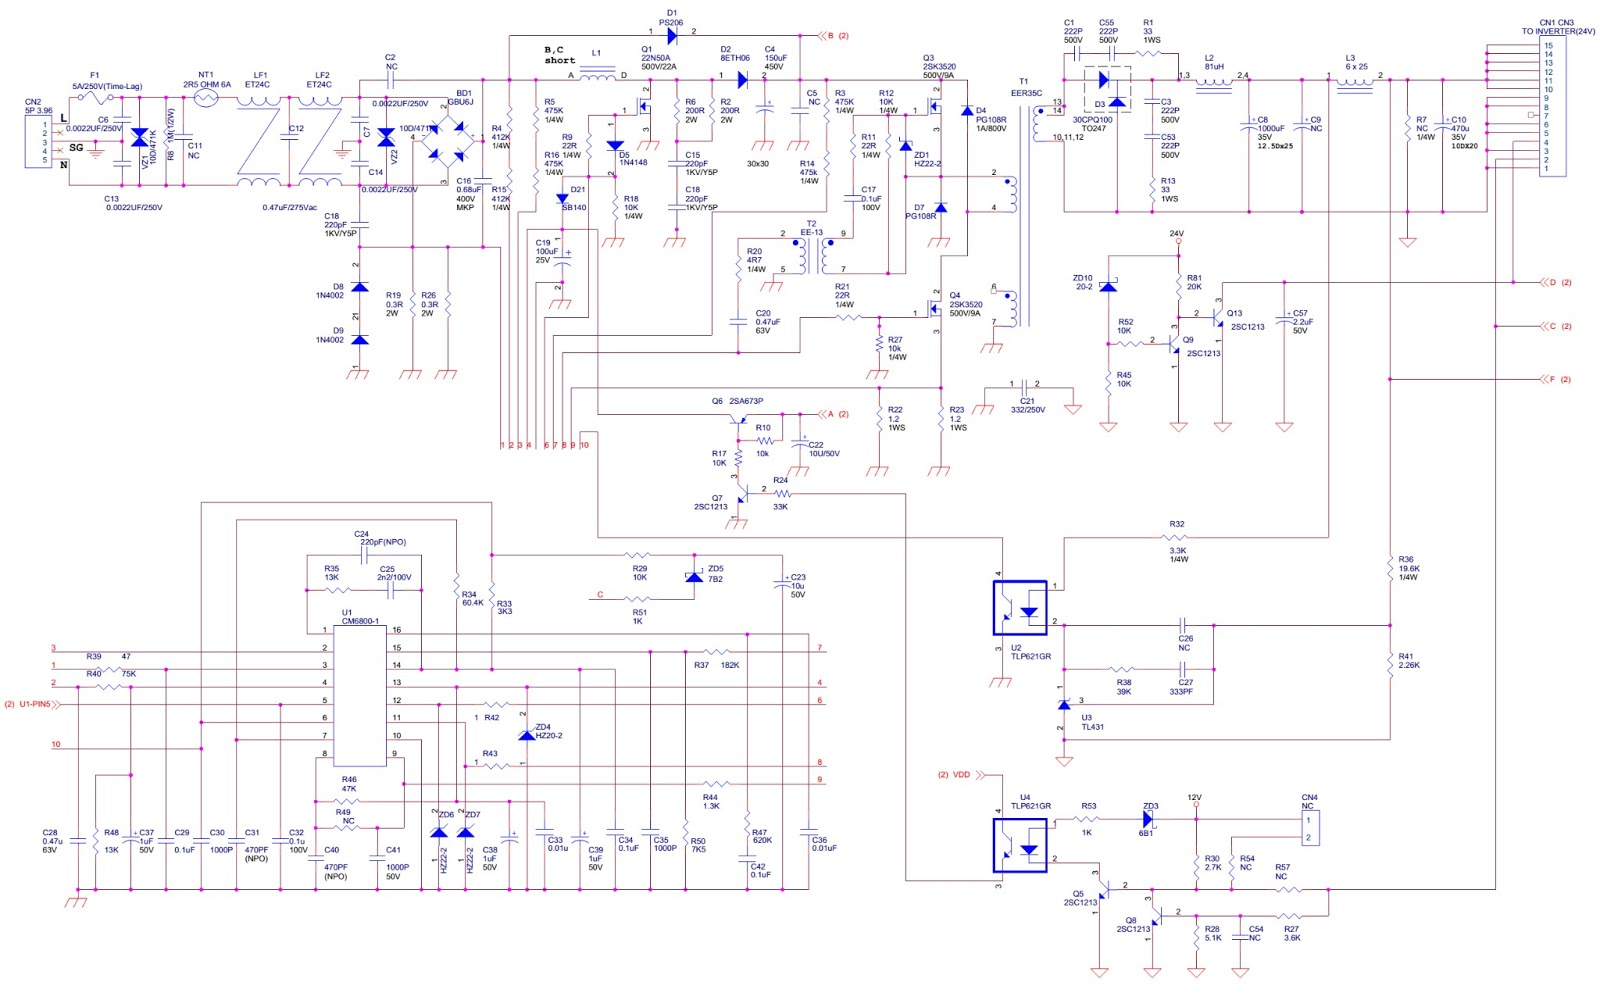 vizio tv wiring diagram simple wiring schema vizio tv connections vizio tv diagram [ 1600 x 993 Pixel ]